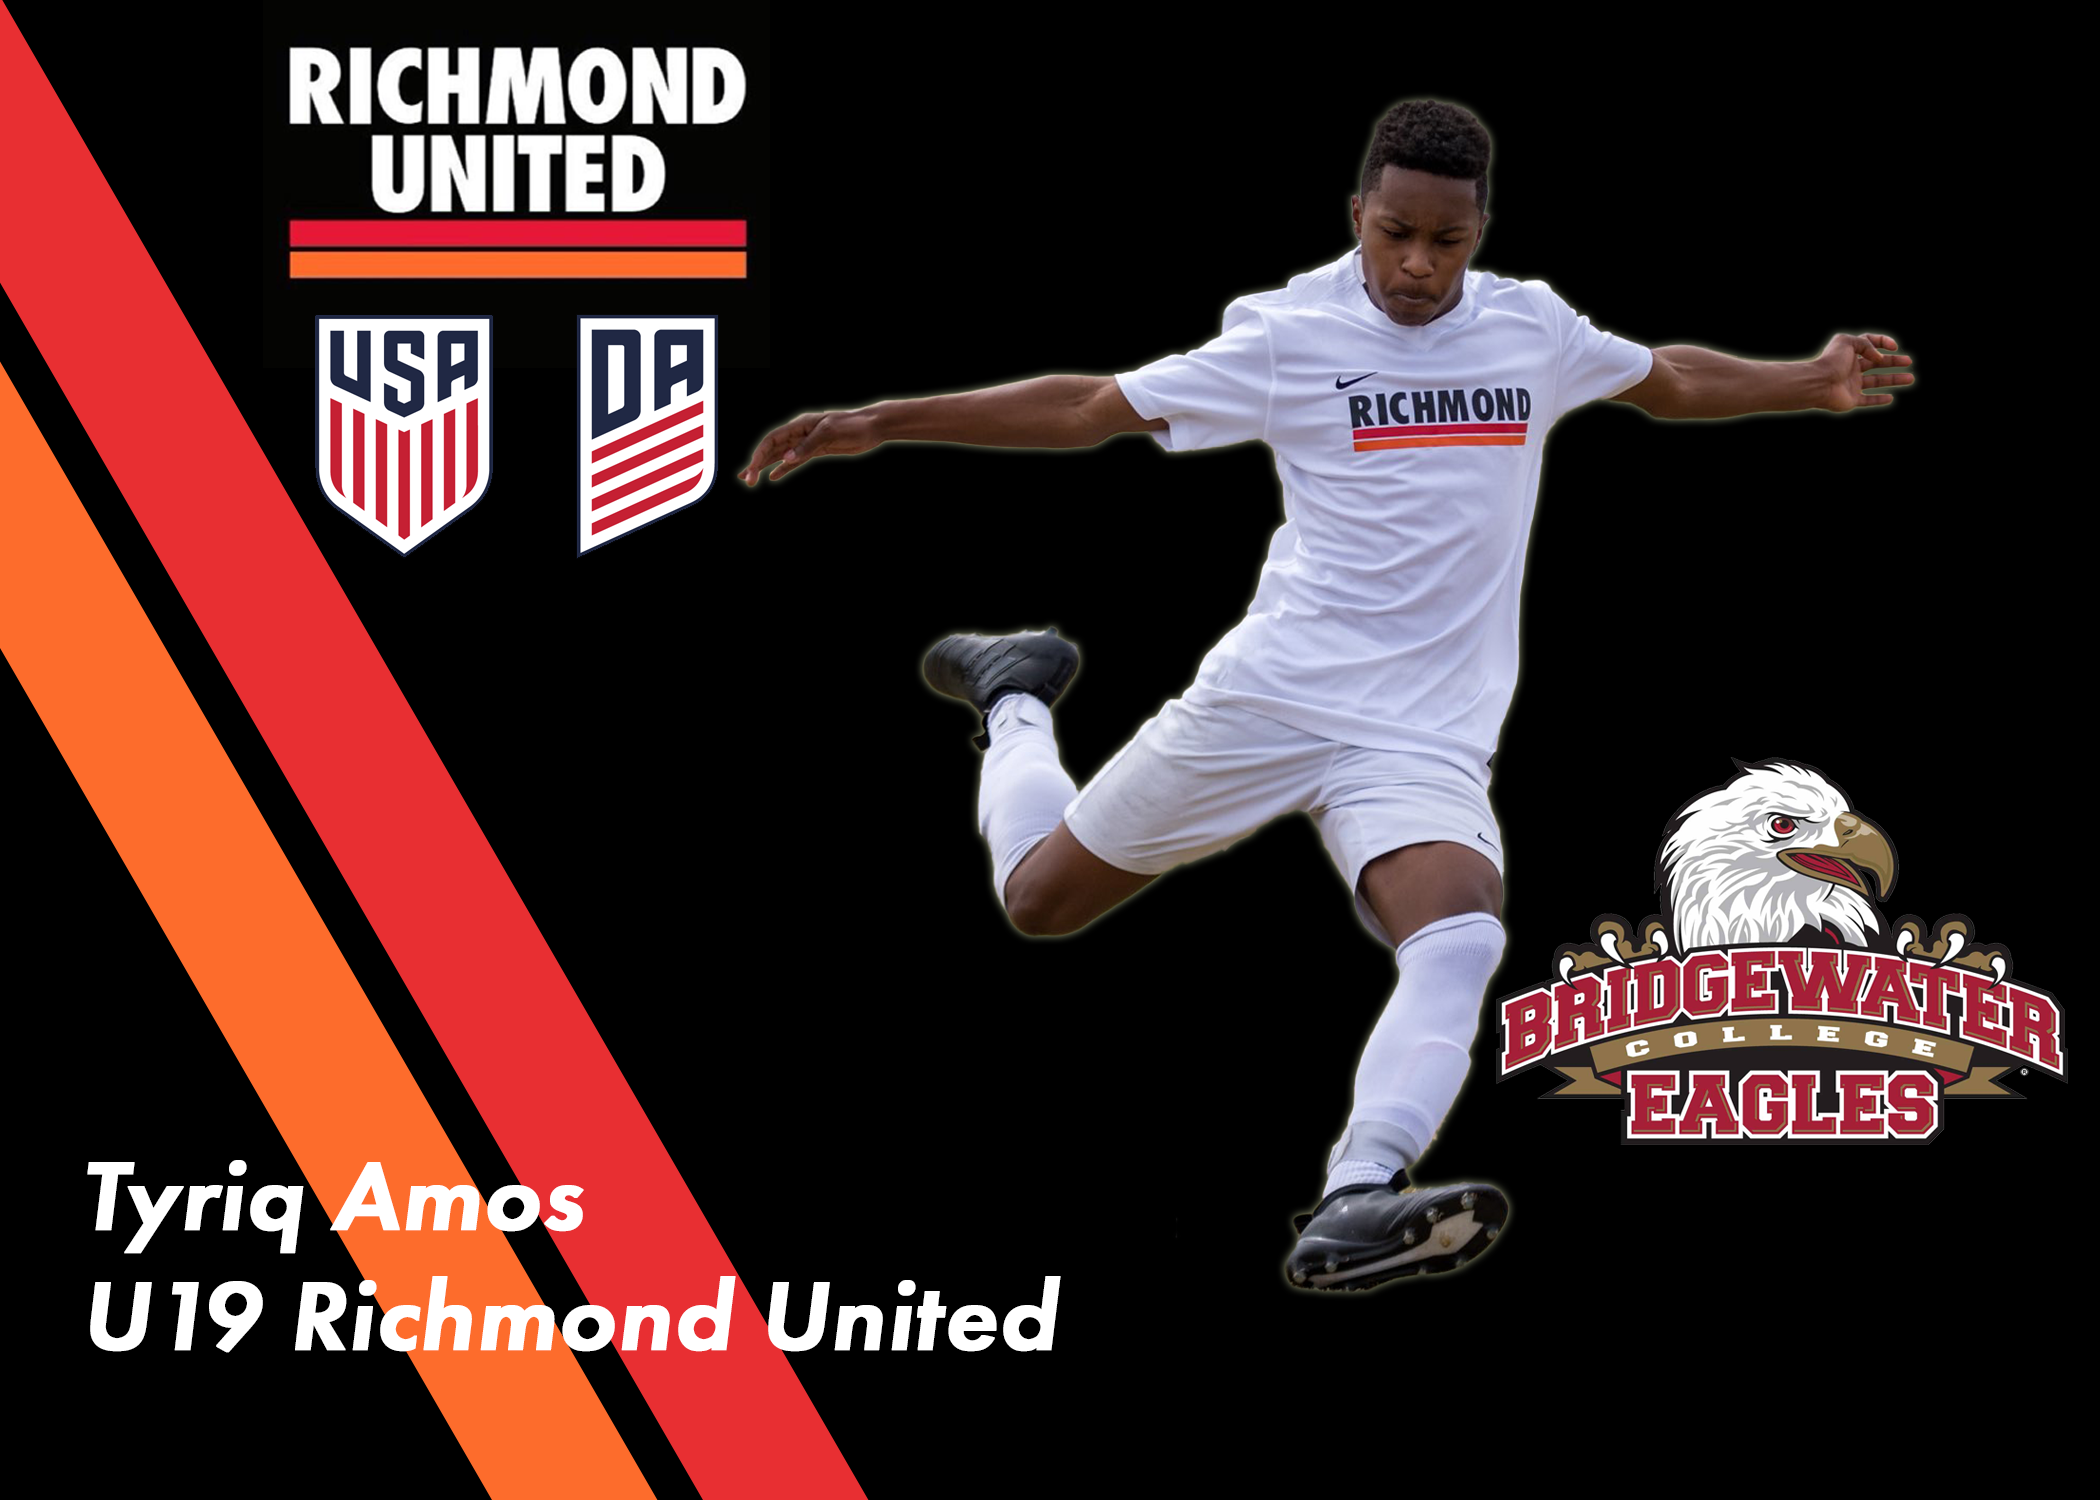 Tyriq Amos Commits to Bridgewater College for the Fall of 2020